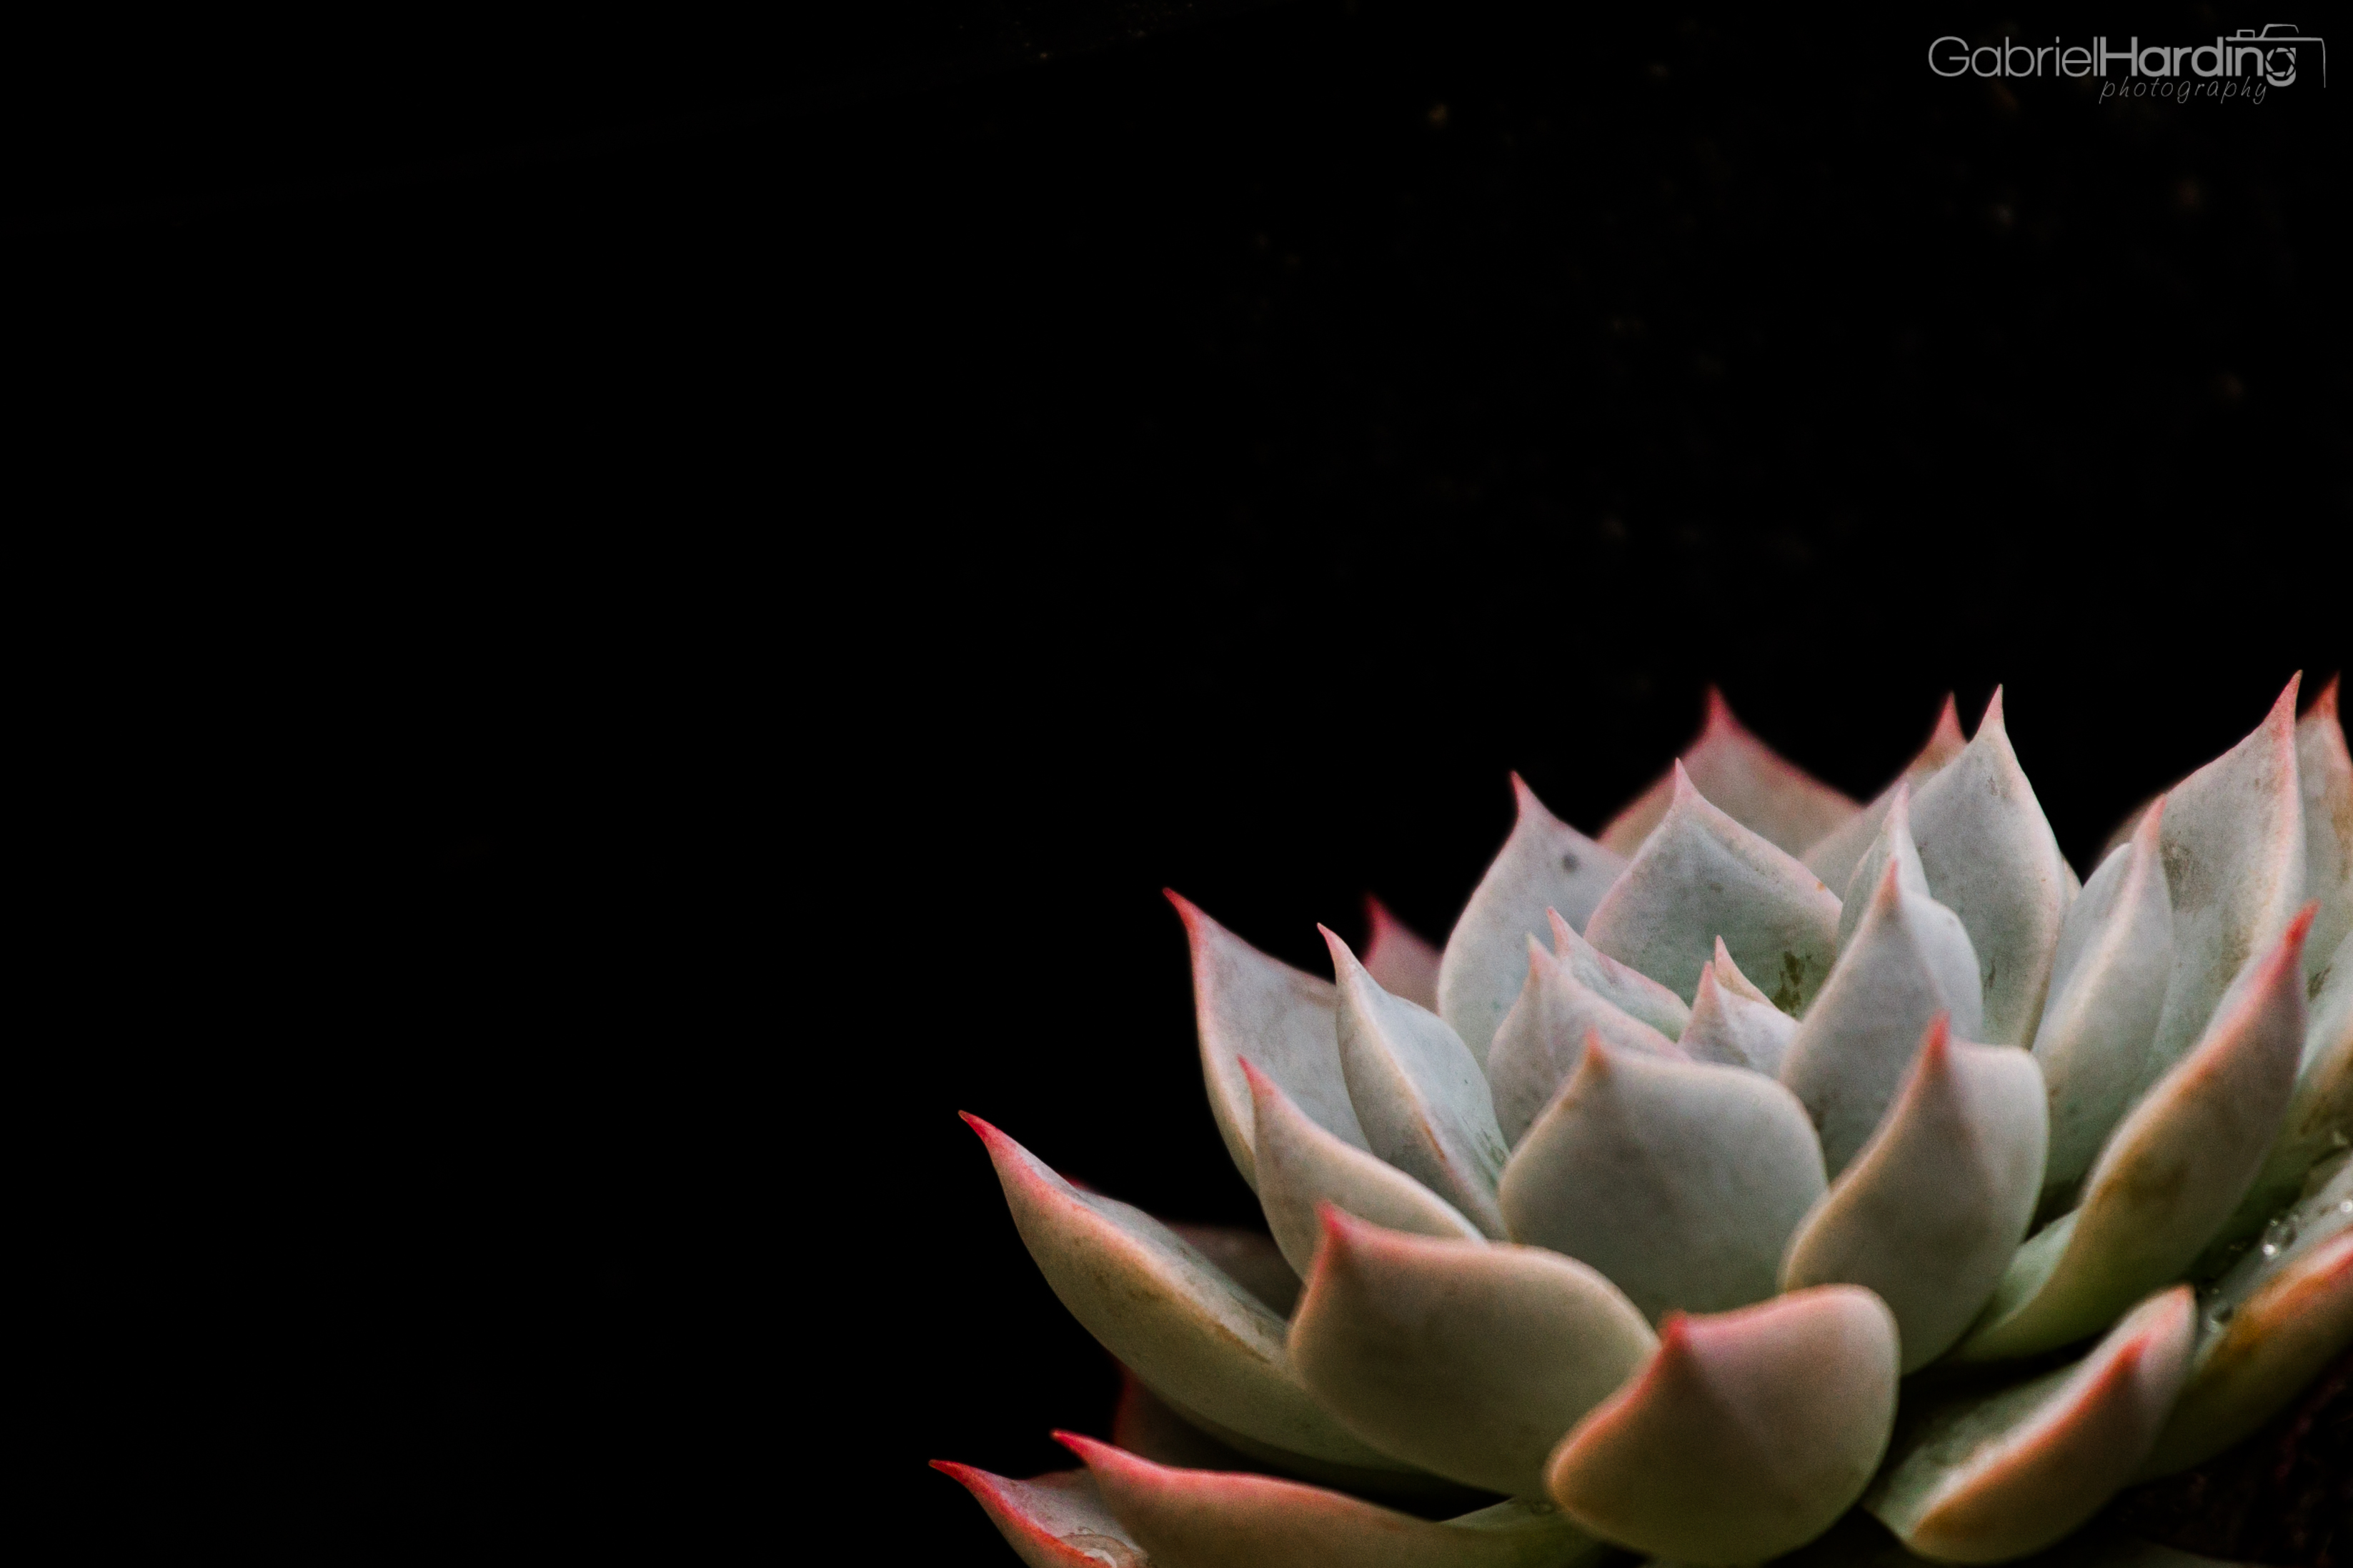 Succulent Desktop Wallpaper 3293x2195 Download Hd Wallpaper Wallpapertip